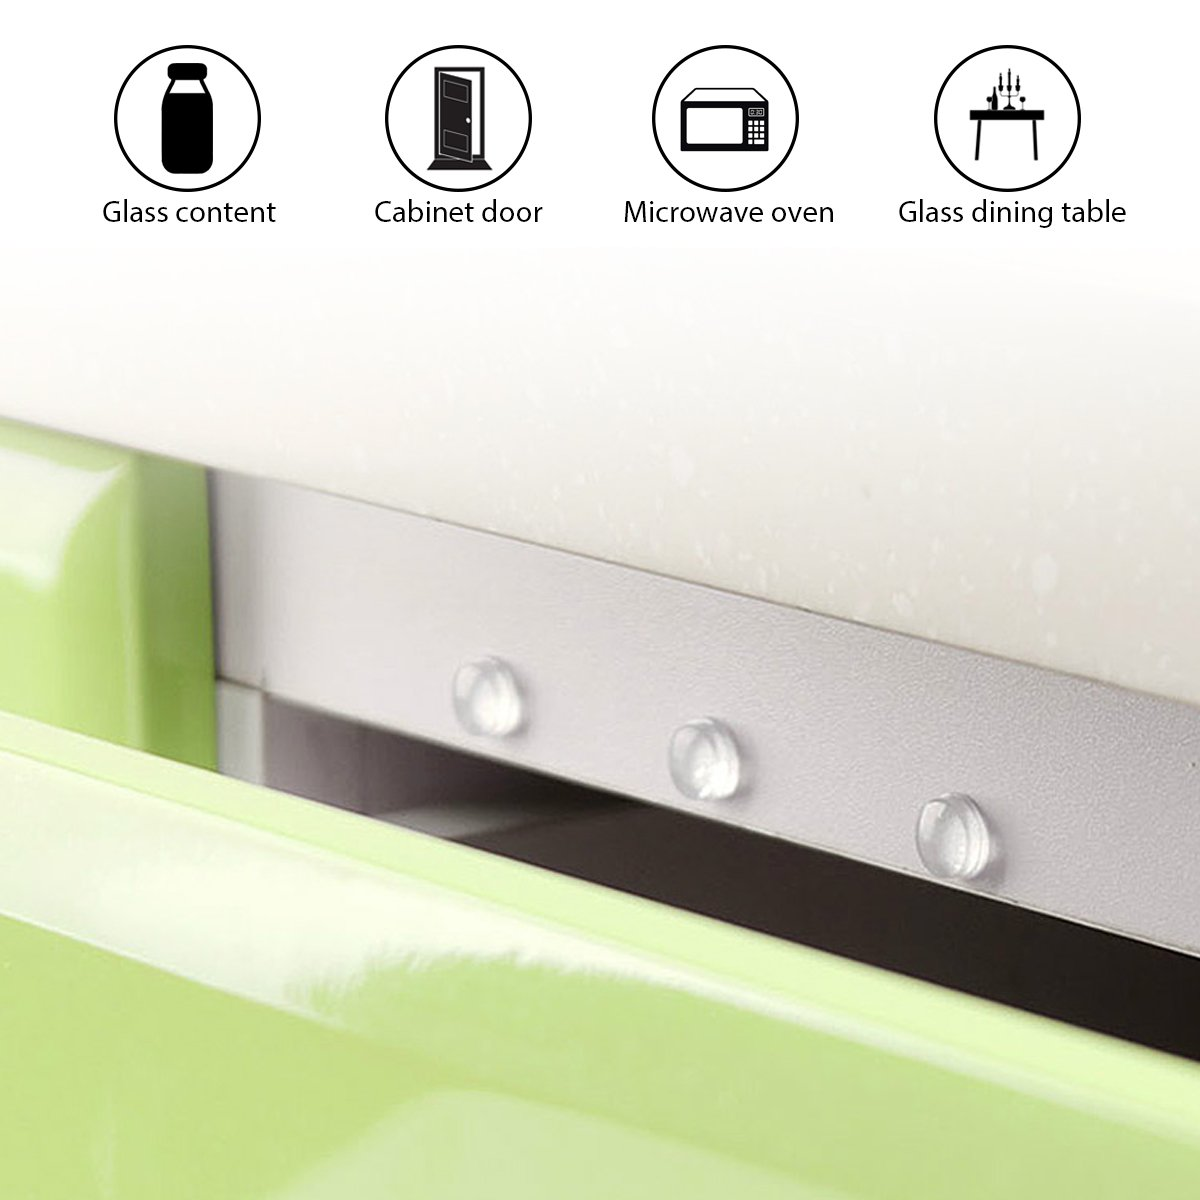 934f5aa0999 Noise Dampening Cabinet Door Bumpers Pads 321 Pieces Self Adhesive Clear  Rubber Feet Transparent Stick Bumpers 7 Shapes for Drawers